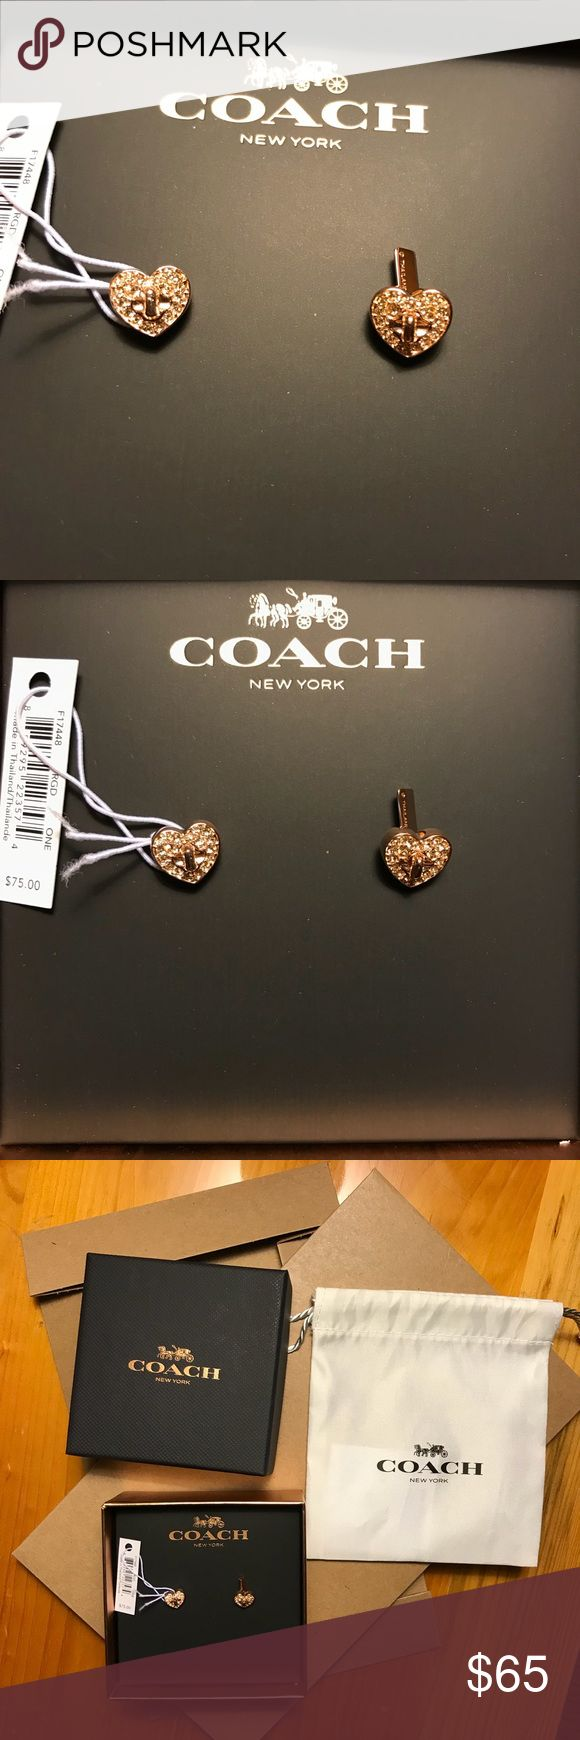 NWT Coach Earrings ❤️ Rose Gold BLACK FRIDAY SPECIAL! 25% OFF of retail! Brand New rose gold Coach earrings with tags, gift box and storing bag! These adorable earrings are studs with a heart shape filled with crystals. Stunning in Rose Gold and a total must have! Coach Jewelry Earrings